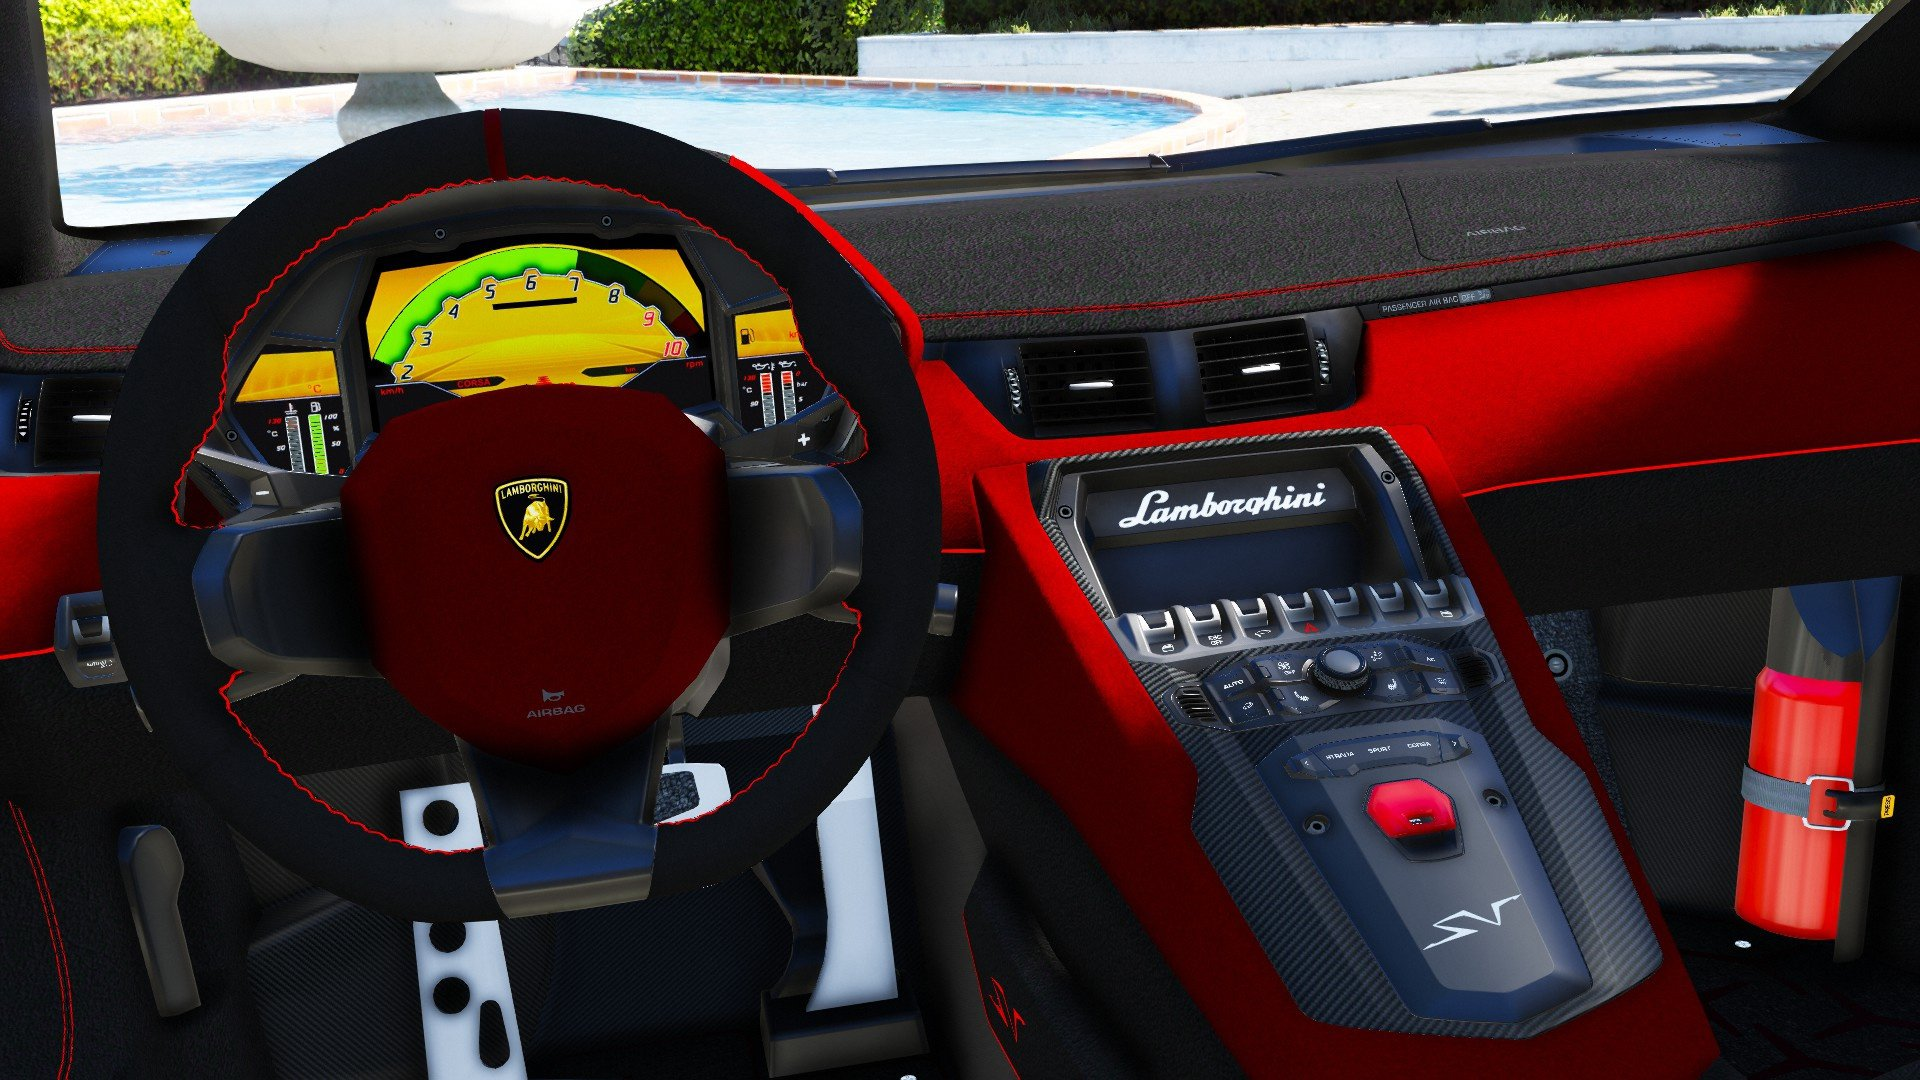 Lamborghini Aventador LP 750-4 SV 2015 [Add-On] для GTA V - Скриншот 1